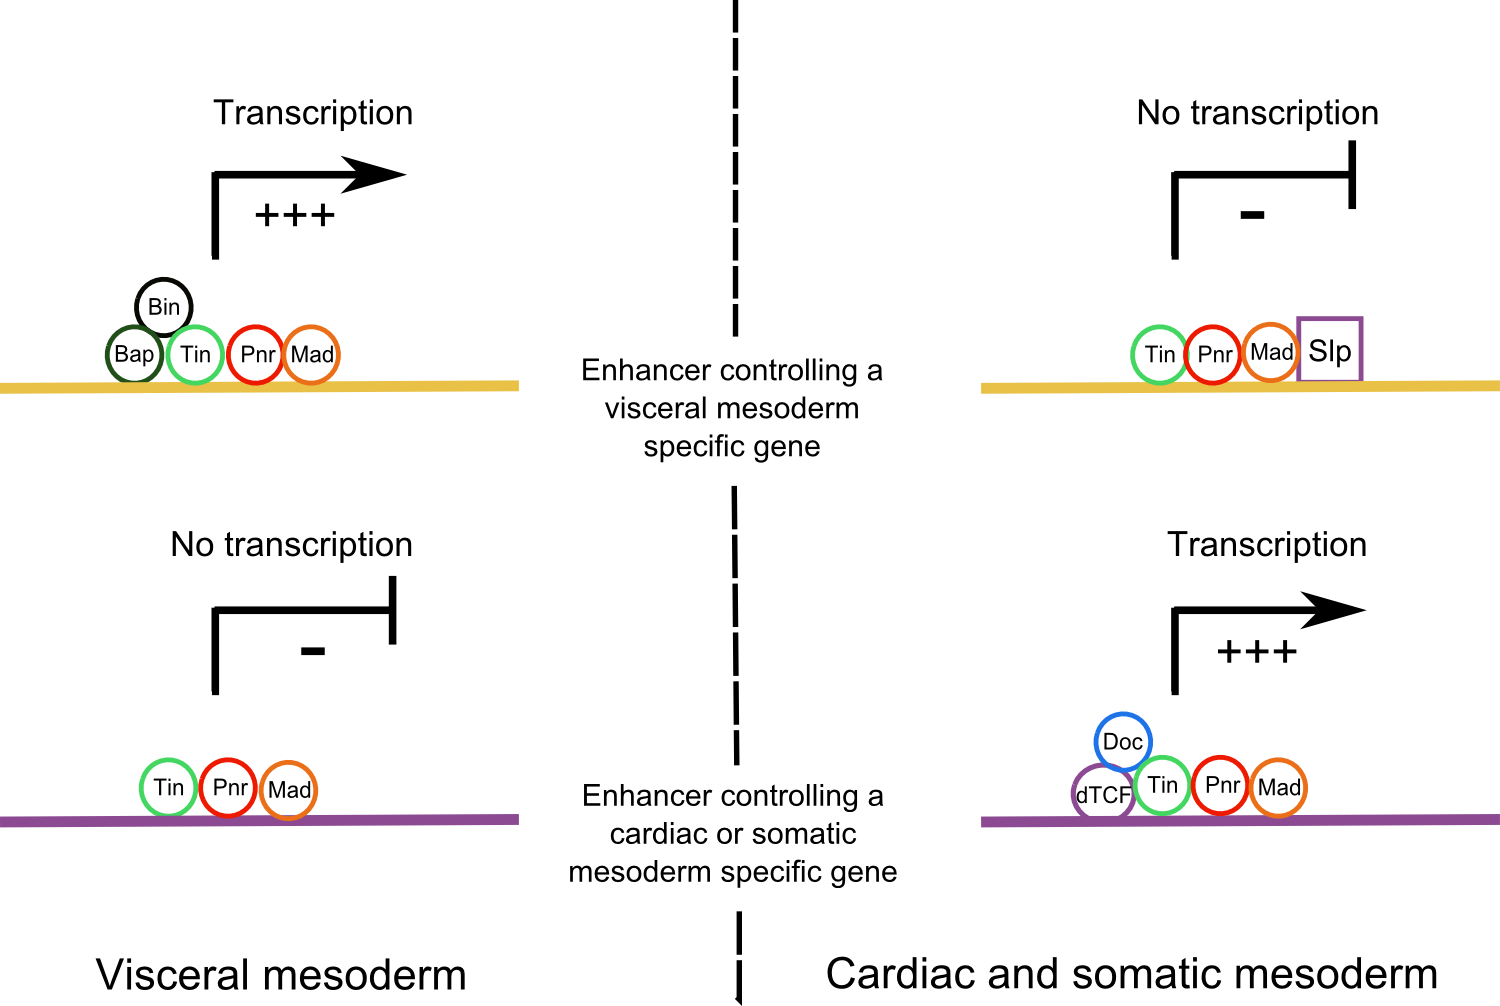 Activation of different downstream enhancers in Wg+ and Wg- domains.